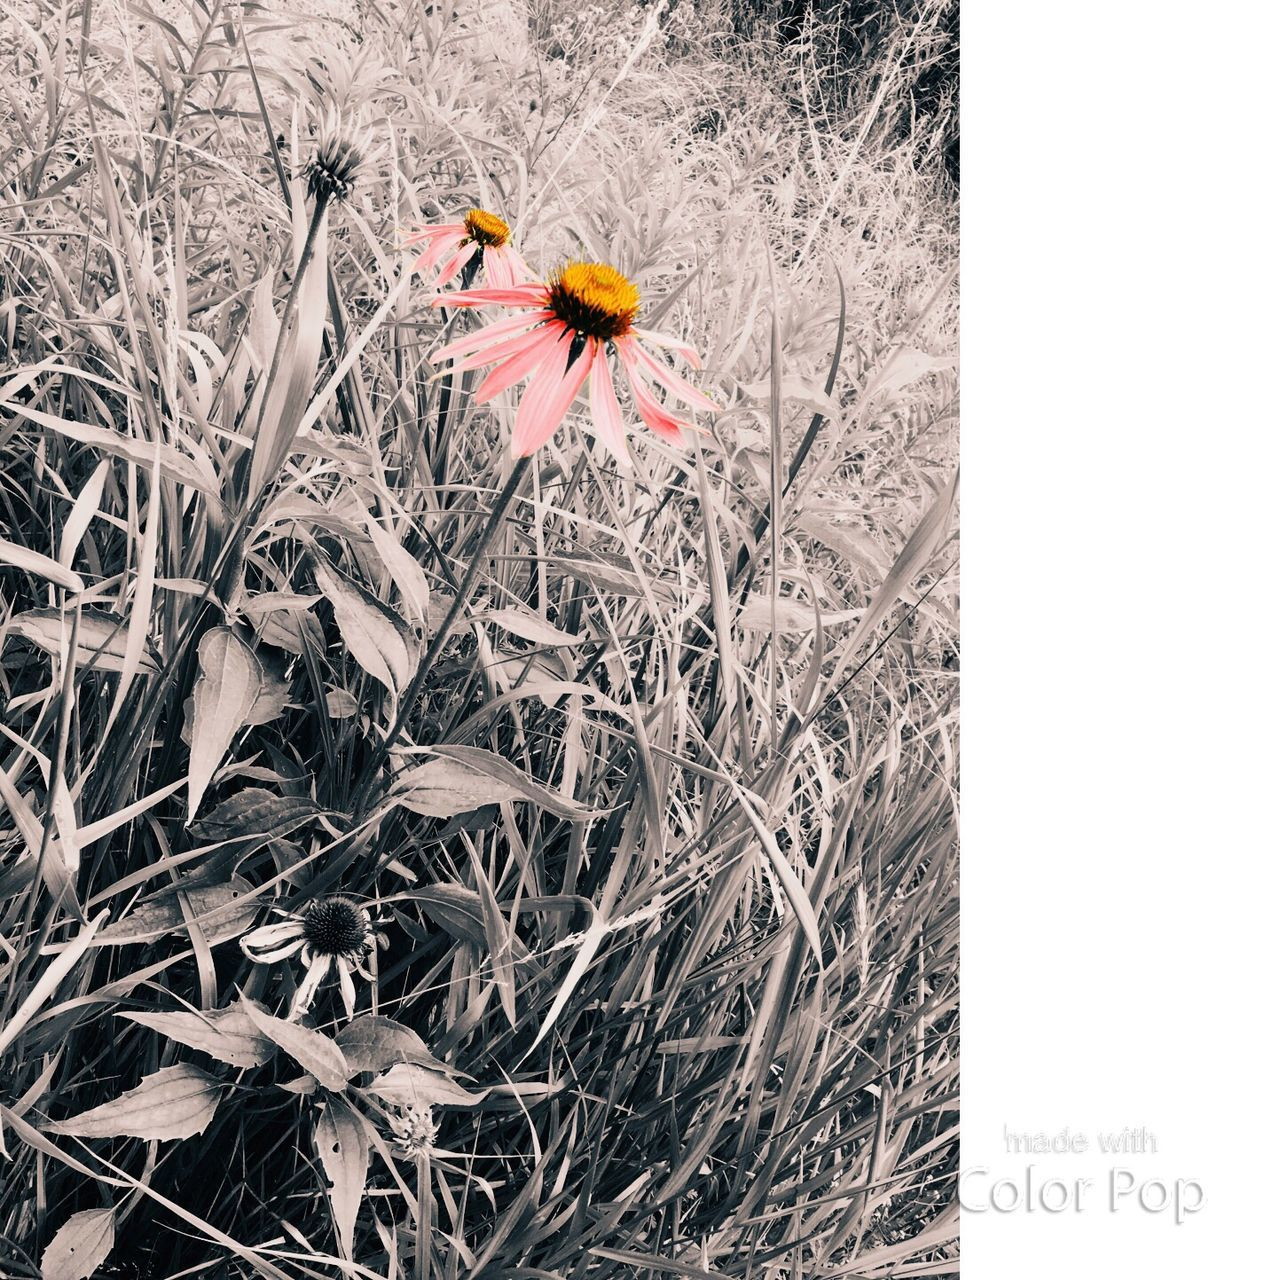 flower, fragility, nature, petal, growth, flower head, no people, plant, day, freshness, close-up, outdoors, beauty in nature, animal themes, animals in the wild, grass, blooming, bird